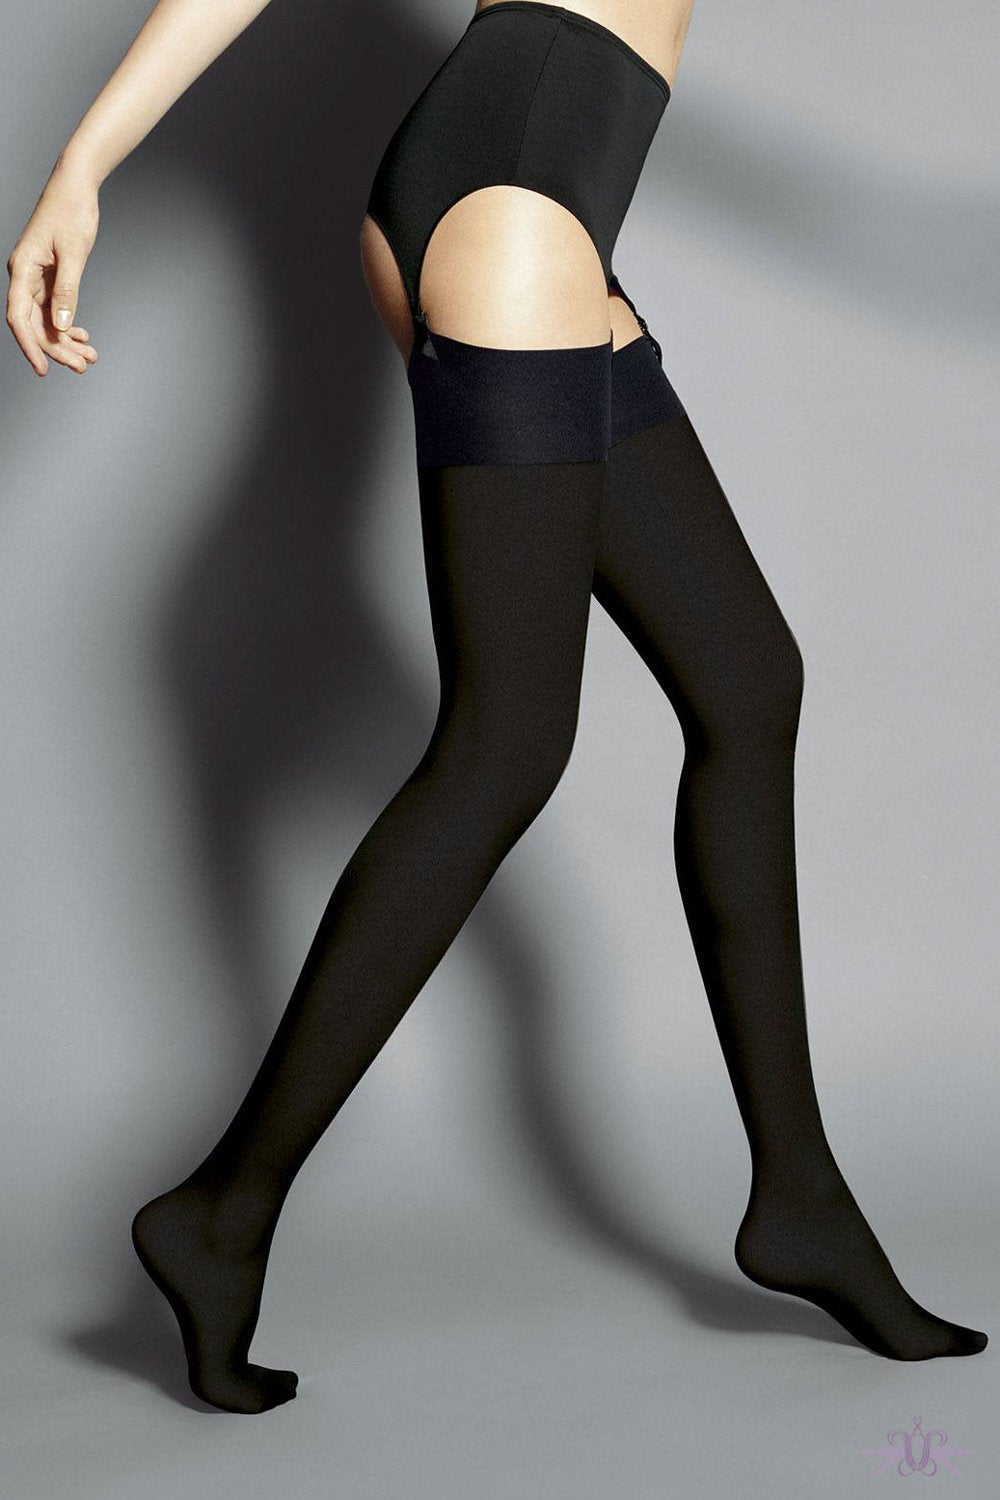 Veneziana Leila Opaque Stockings - The Hosiery Box